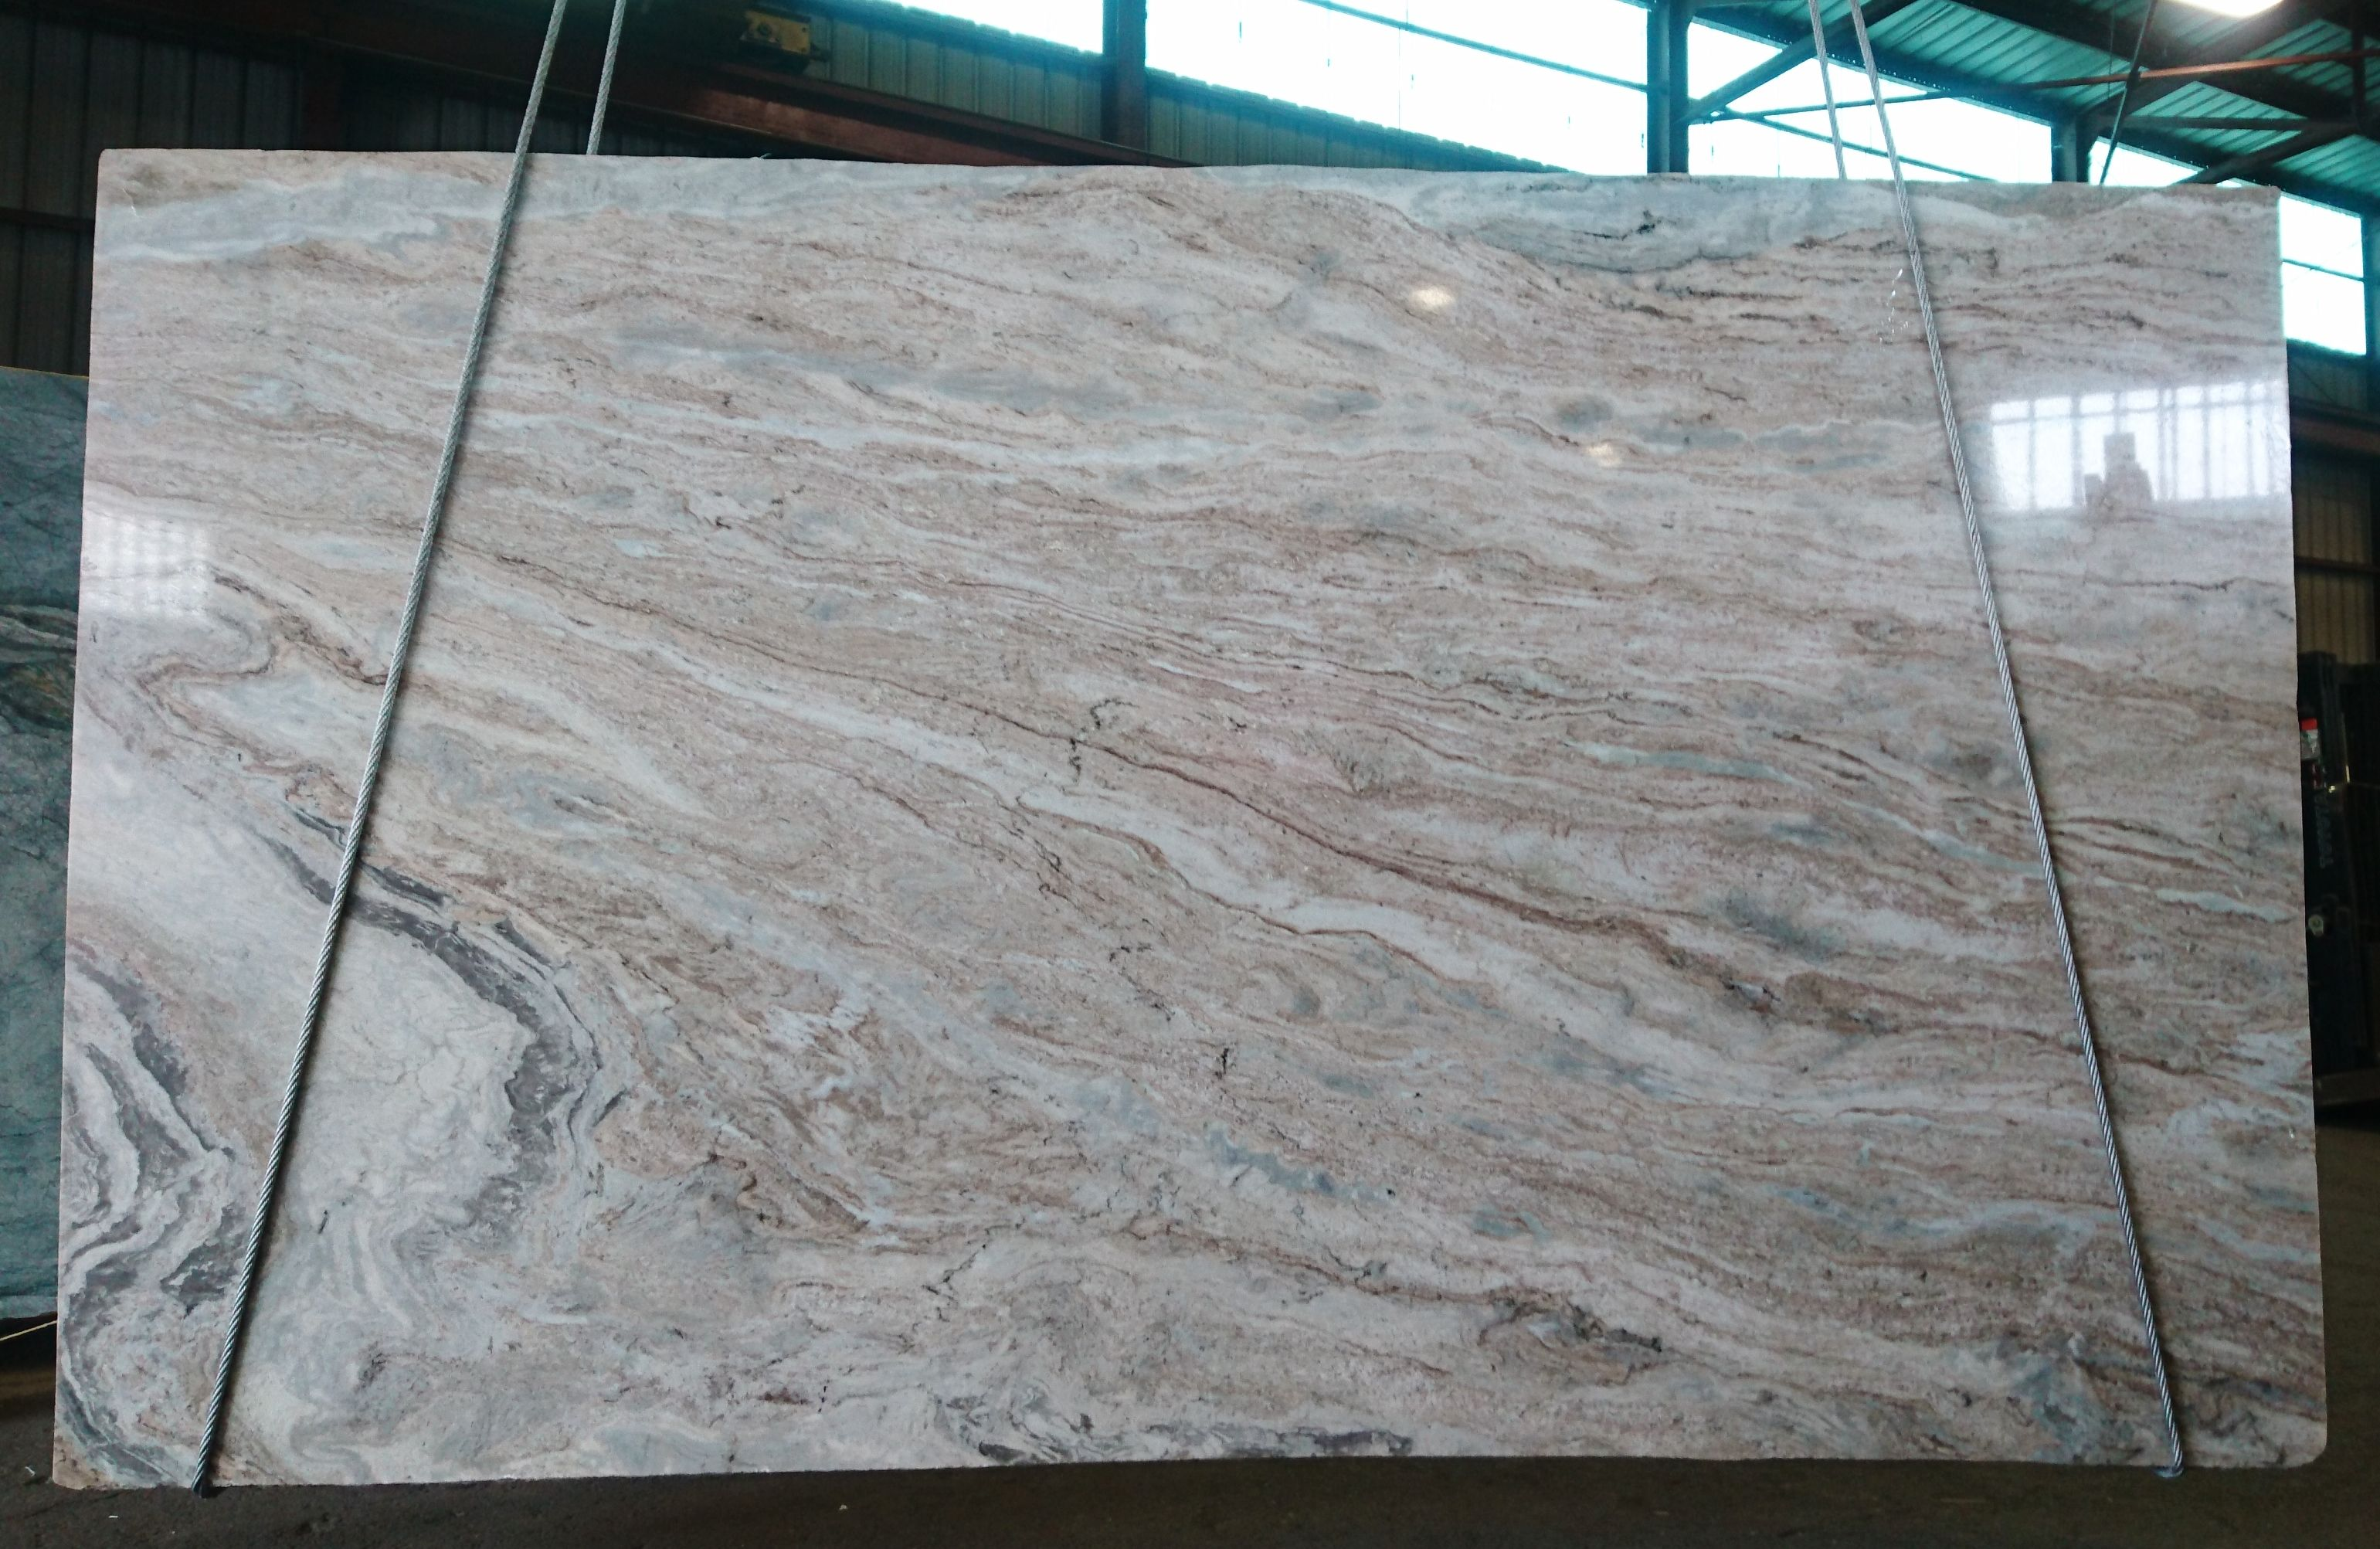 Quartz Countertops And Kitchen Countertops, The Best Prices On Stone In NY  And NJ. We Sell Quartz Countertops, Granite Countertops And Marble  Countertops.